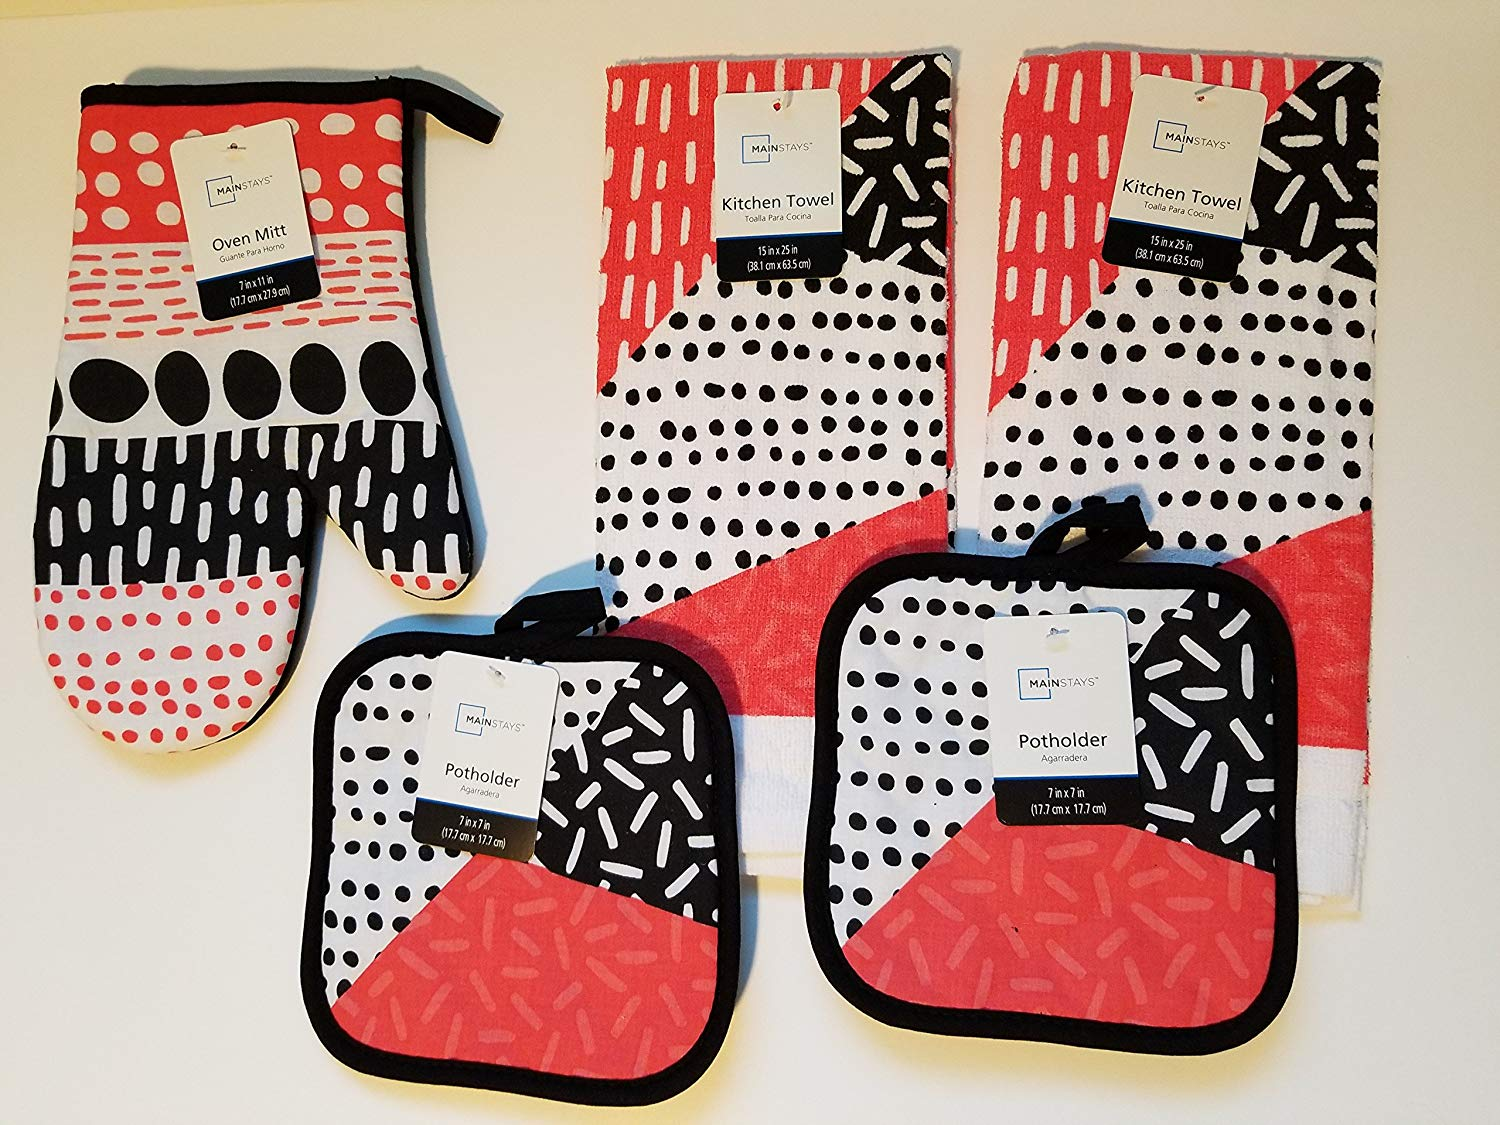 Watermelon Theme 5 Piece Kitchen Linen Set Includes 1 Oven Mitt, 2 Pot Holders and 2 Dish Towels